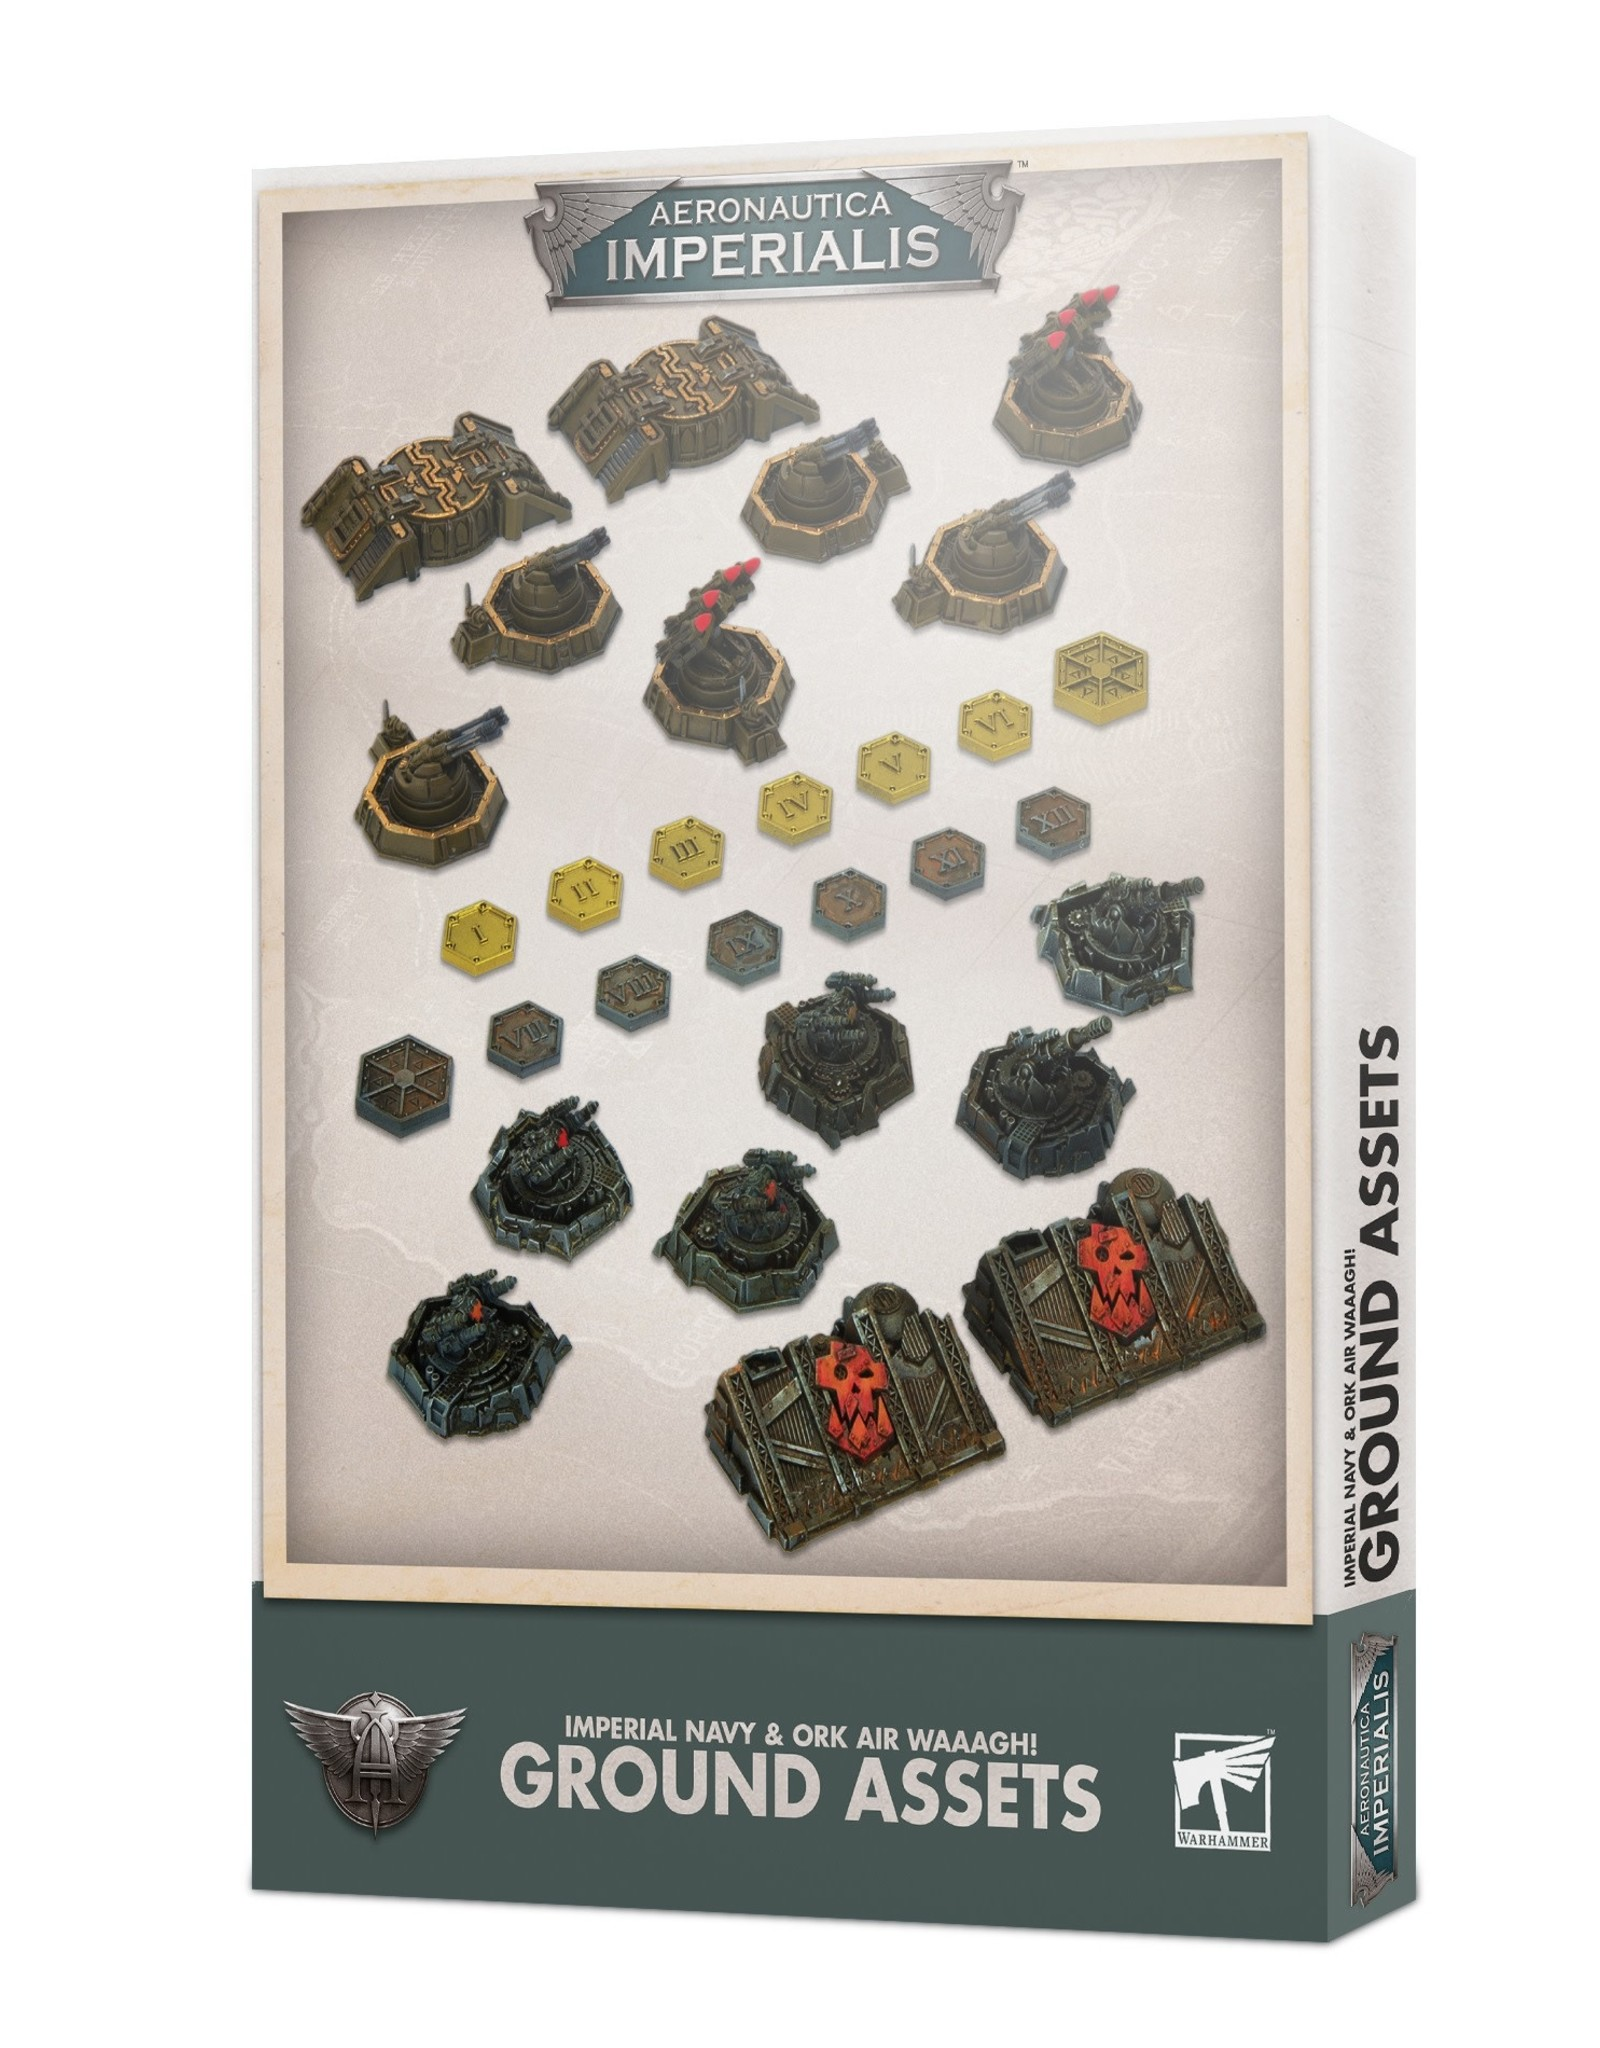 Aeronautica Imperialis Aeronautica imperialis: Imperial and Ork Ground Assets